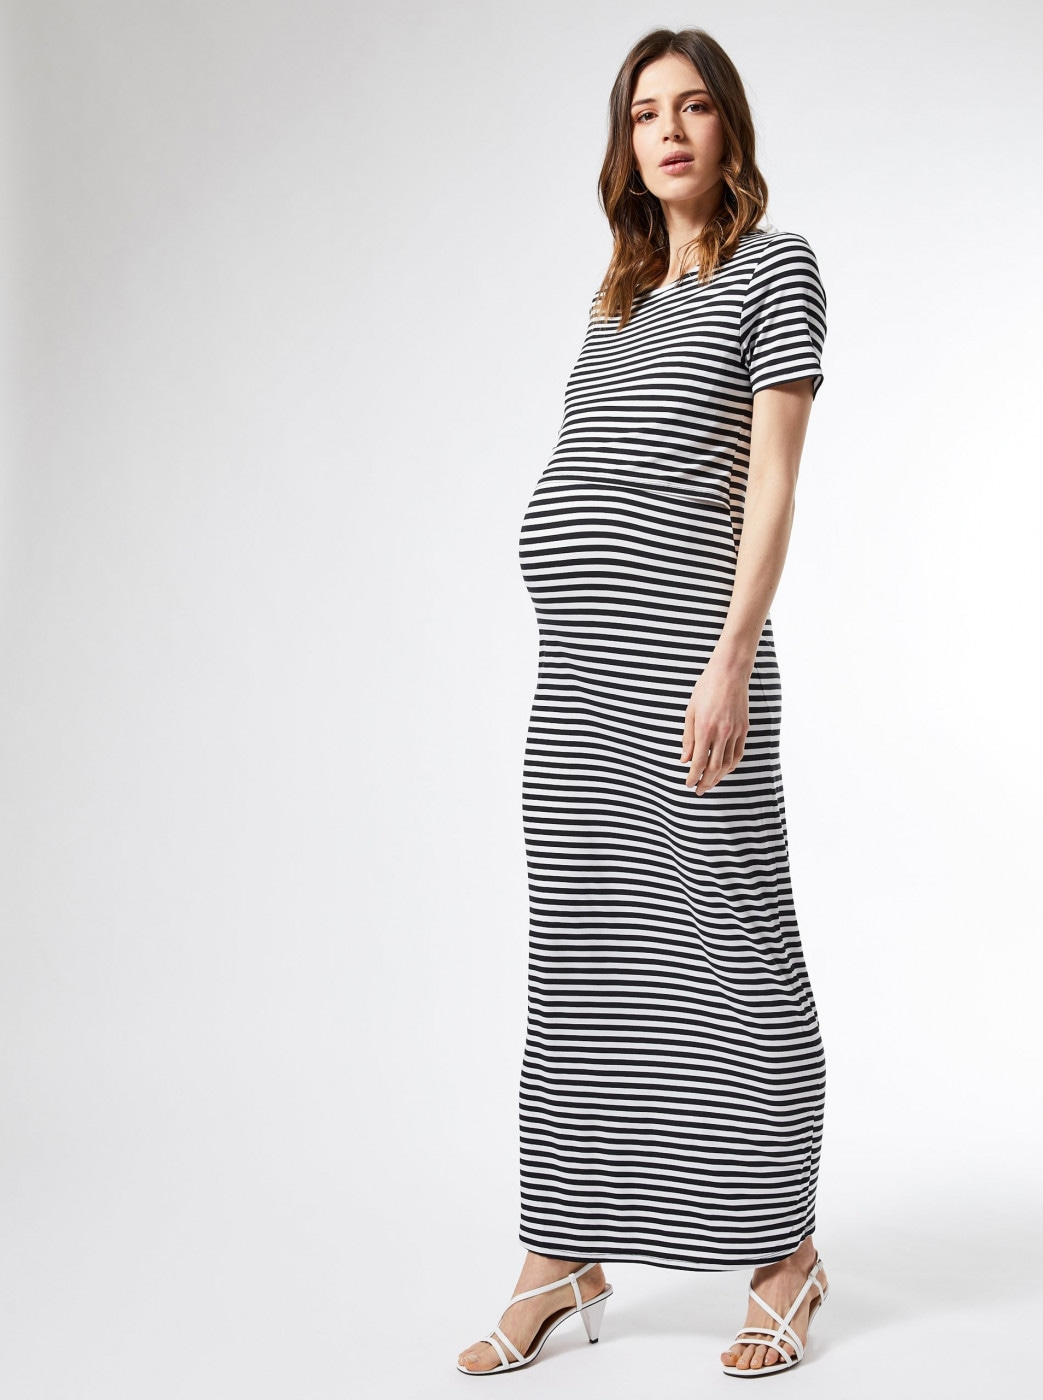 Dorothy Perkins Maternity White Striped Maternity/Nursing Basic Maxi dress